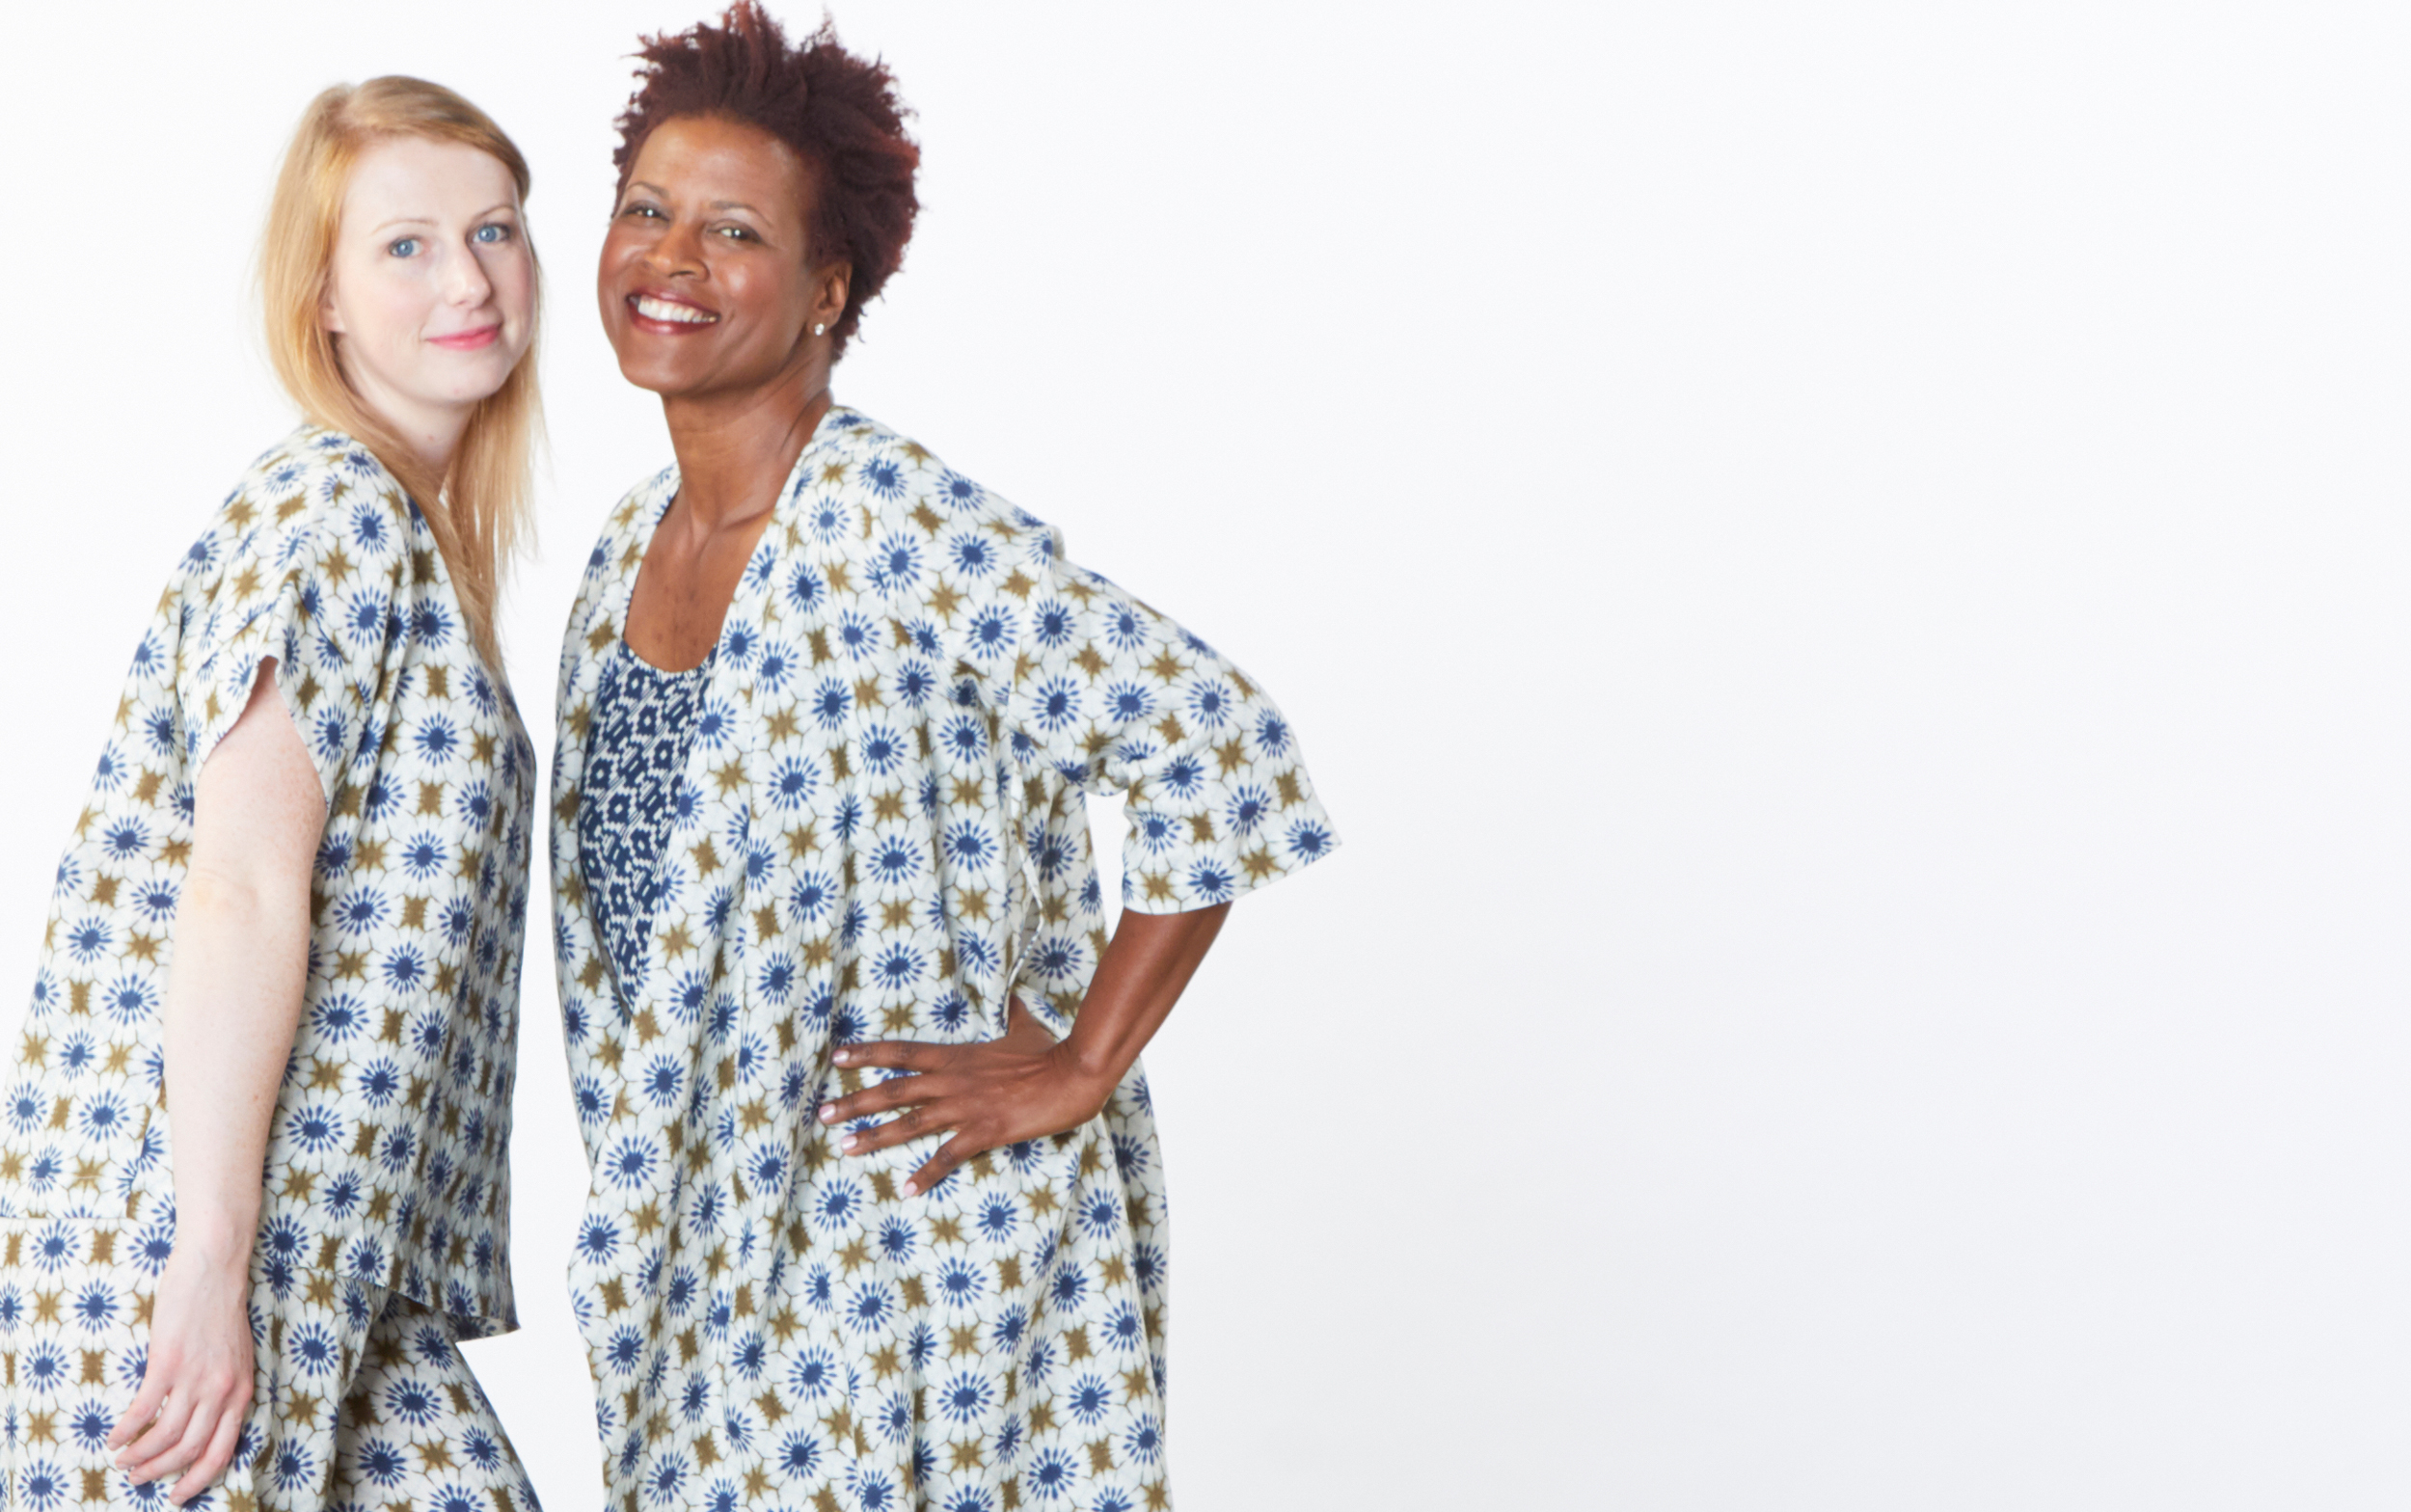 Orla Shirt, Bell Pant, Zena Tunic in Moss/Ivory, Lucy Tank in Blue/Ivory Italian Print Linen